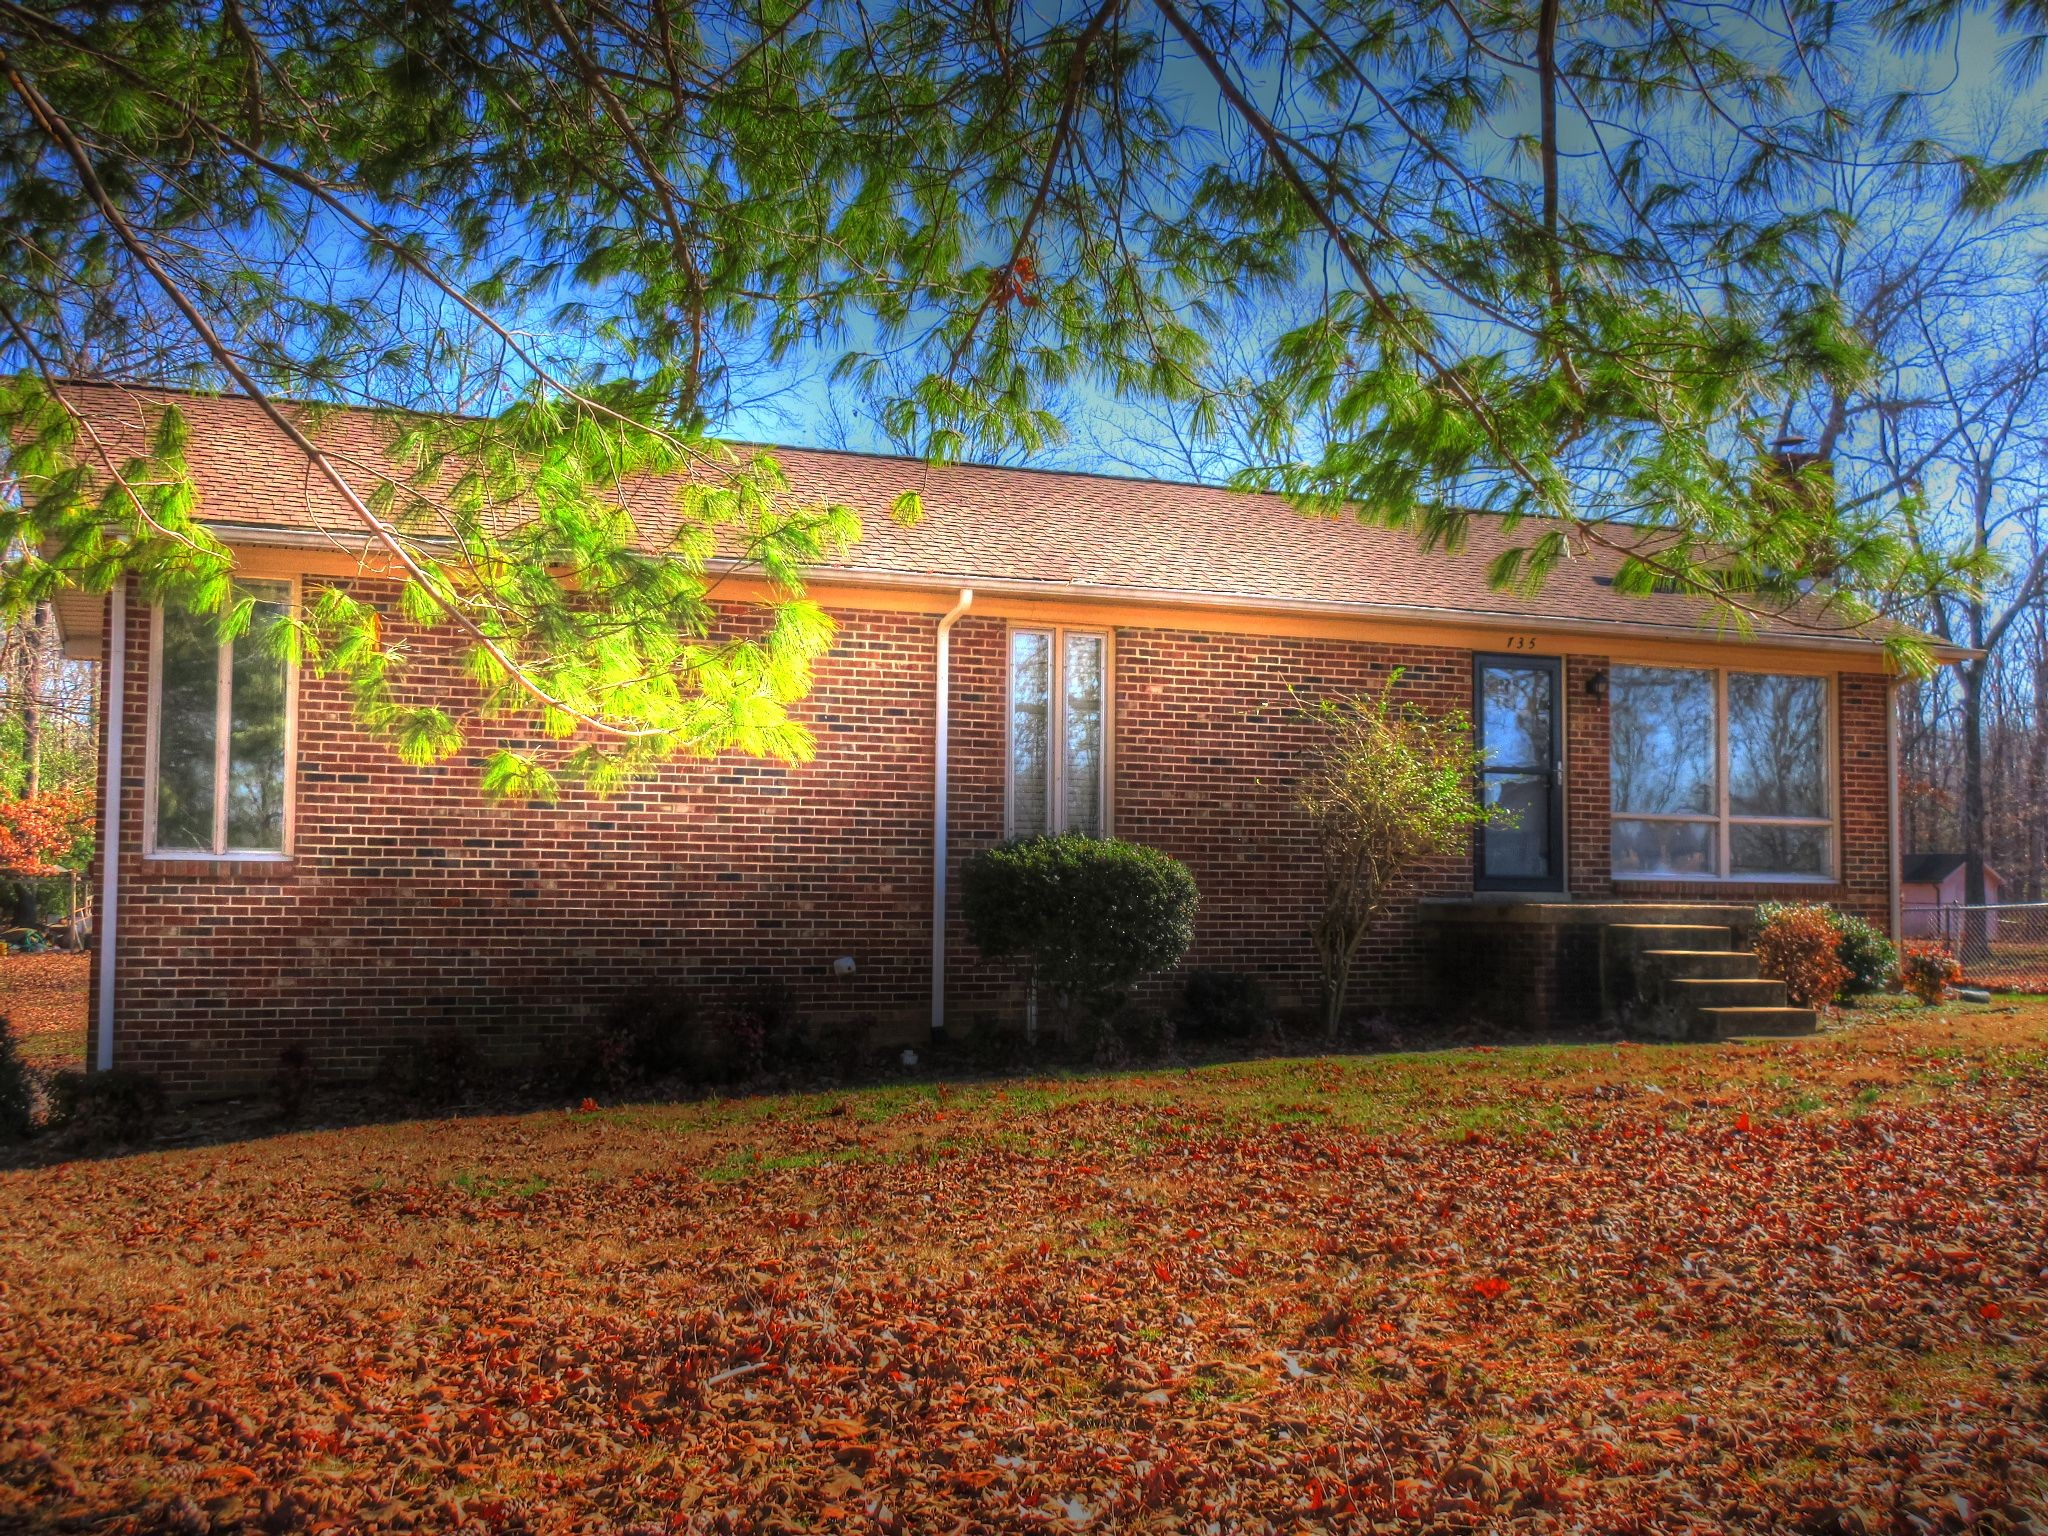 735 Woodlawn Dr, New Johnsonville, TN 37134 - New Johnsonville, TN real estate listing